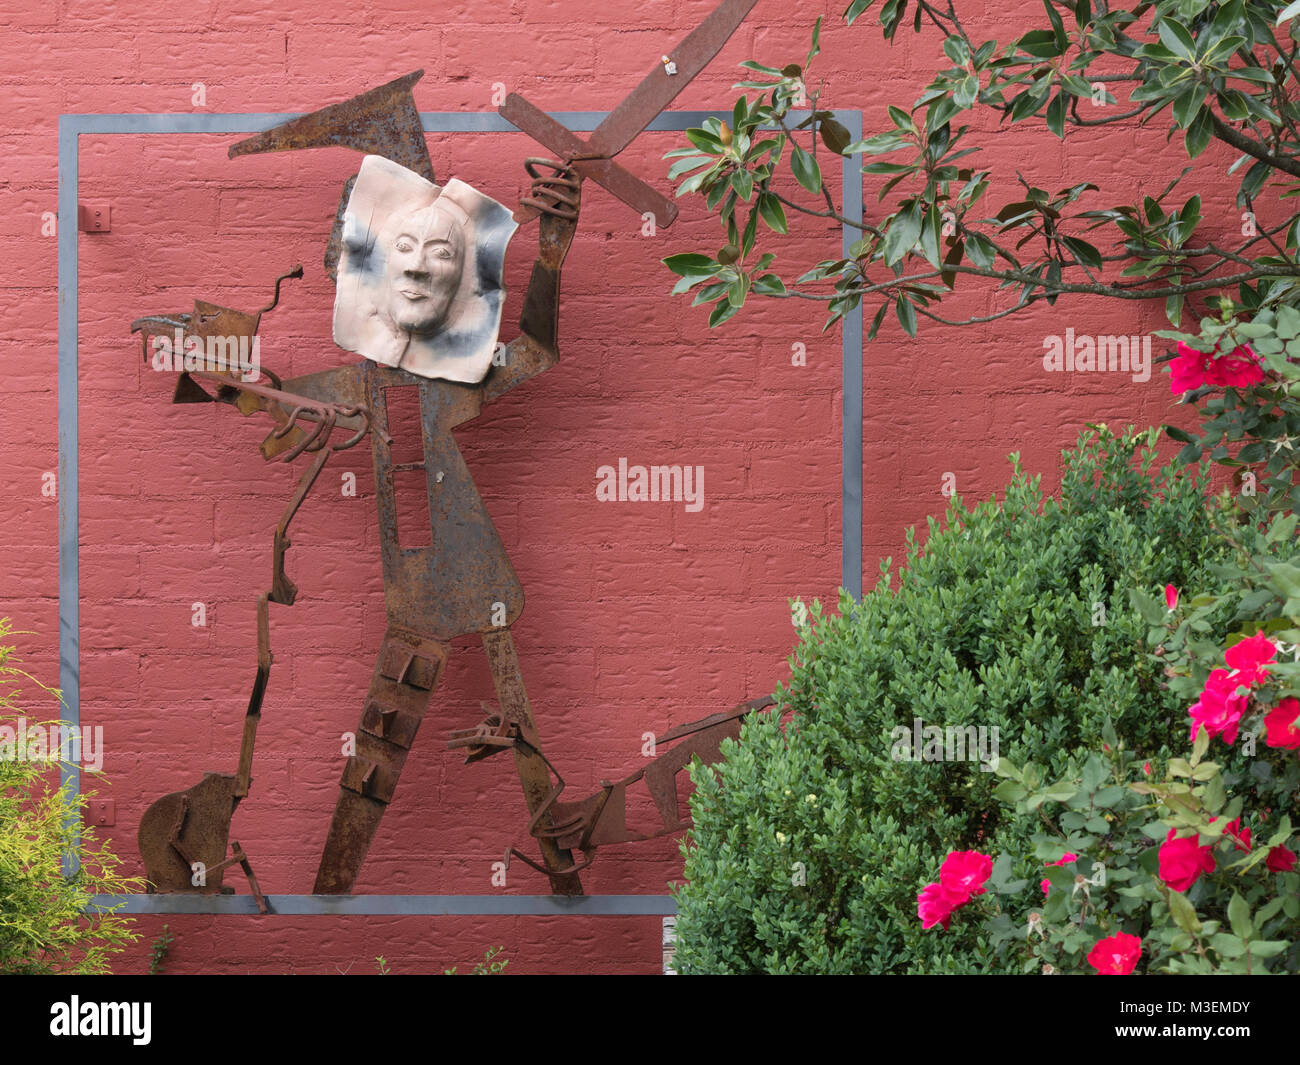 Asheville, North Carolina - May 4, 2017: Multi media sculpture of a human figure is on the side of the Asheville - Stock Image